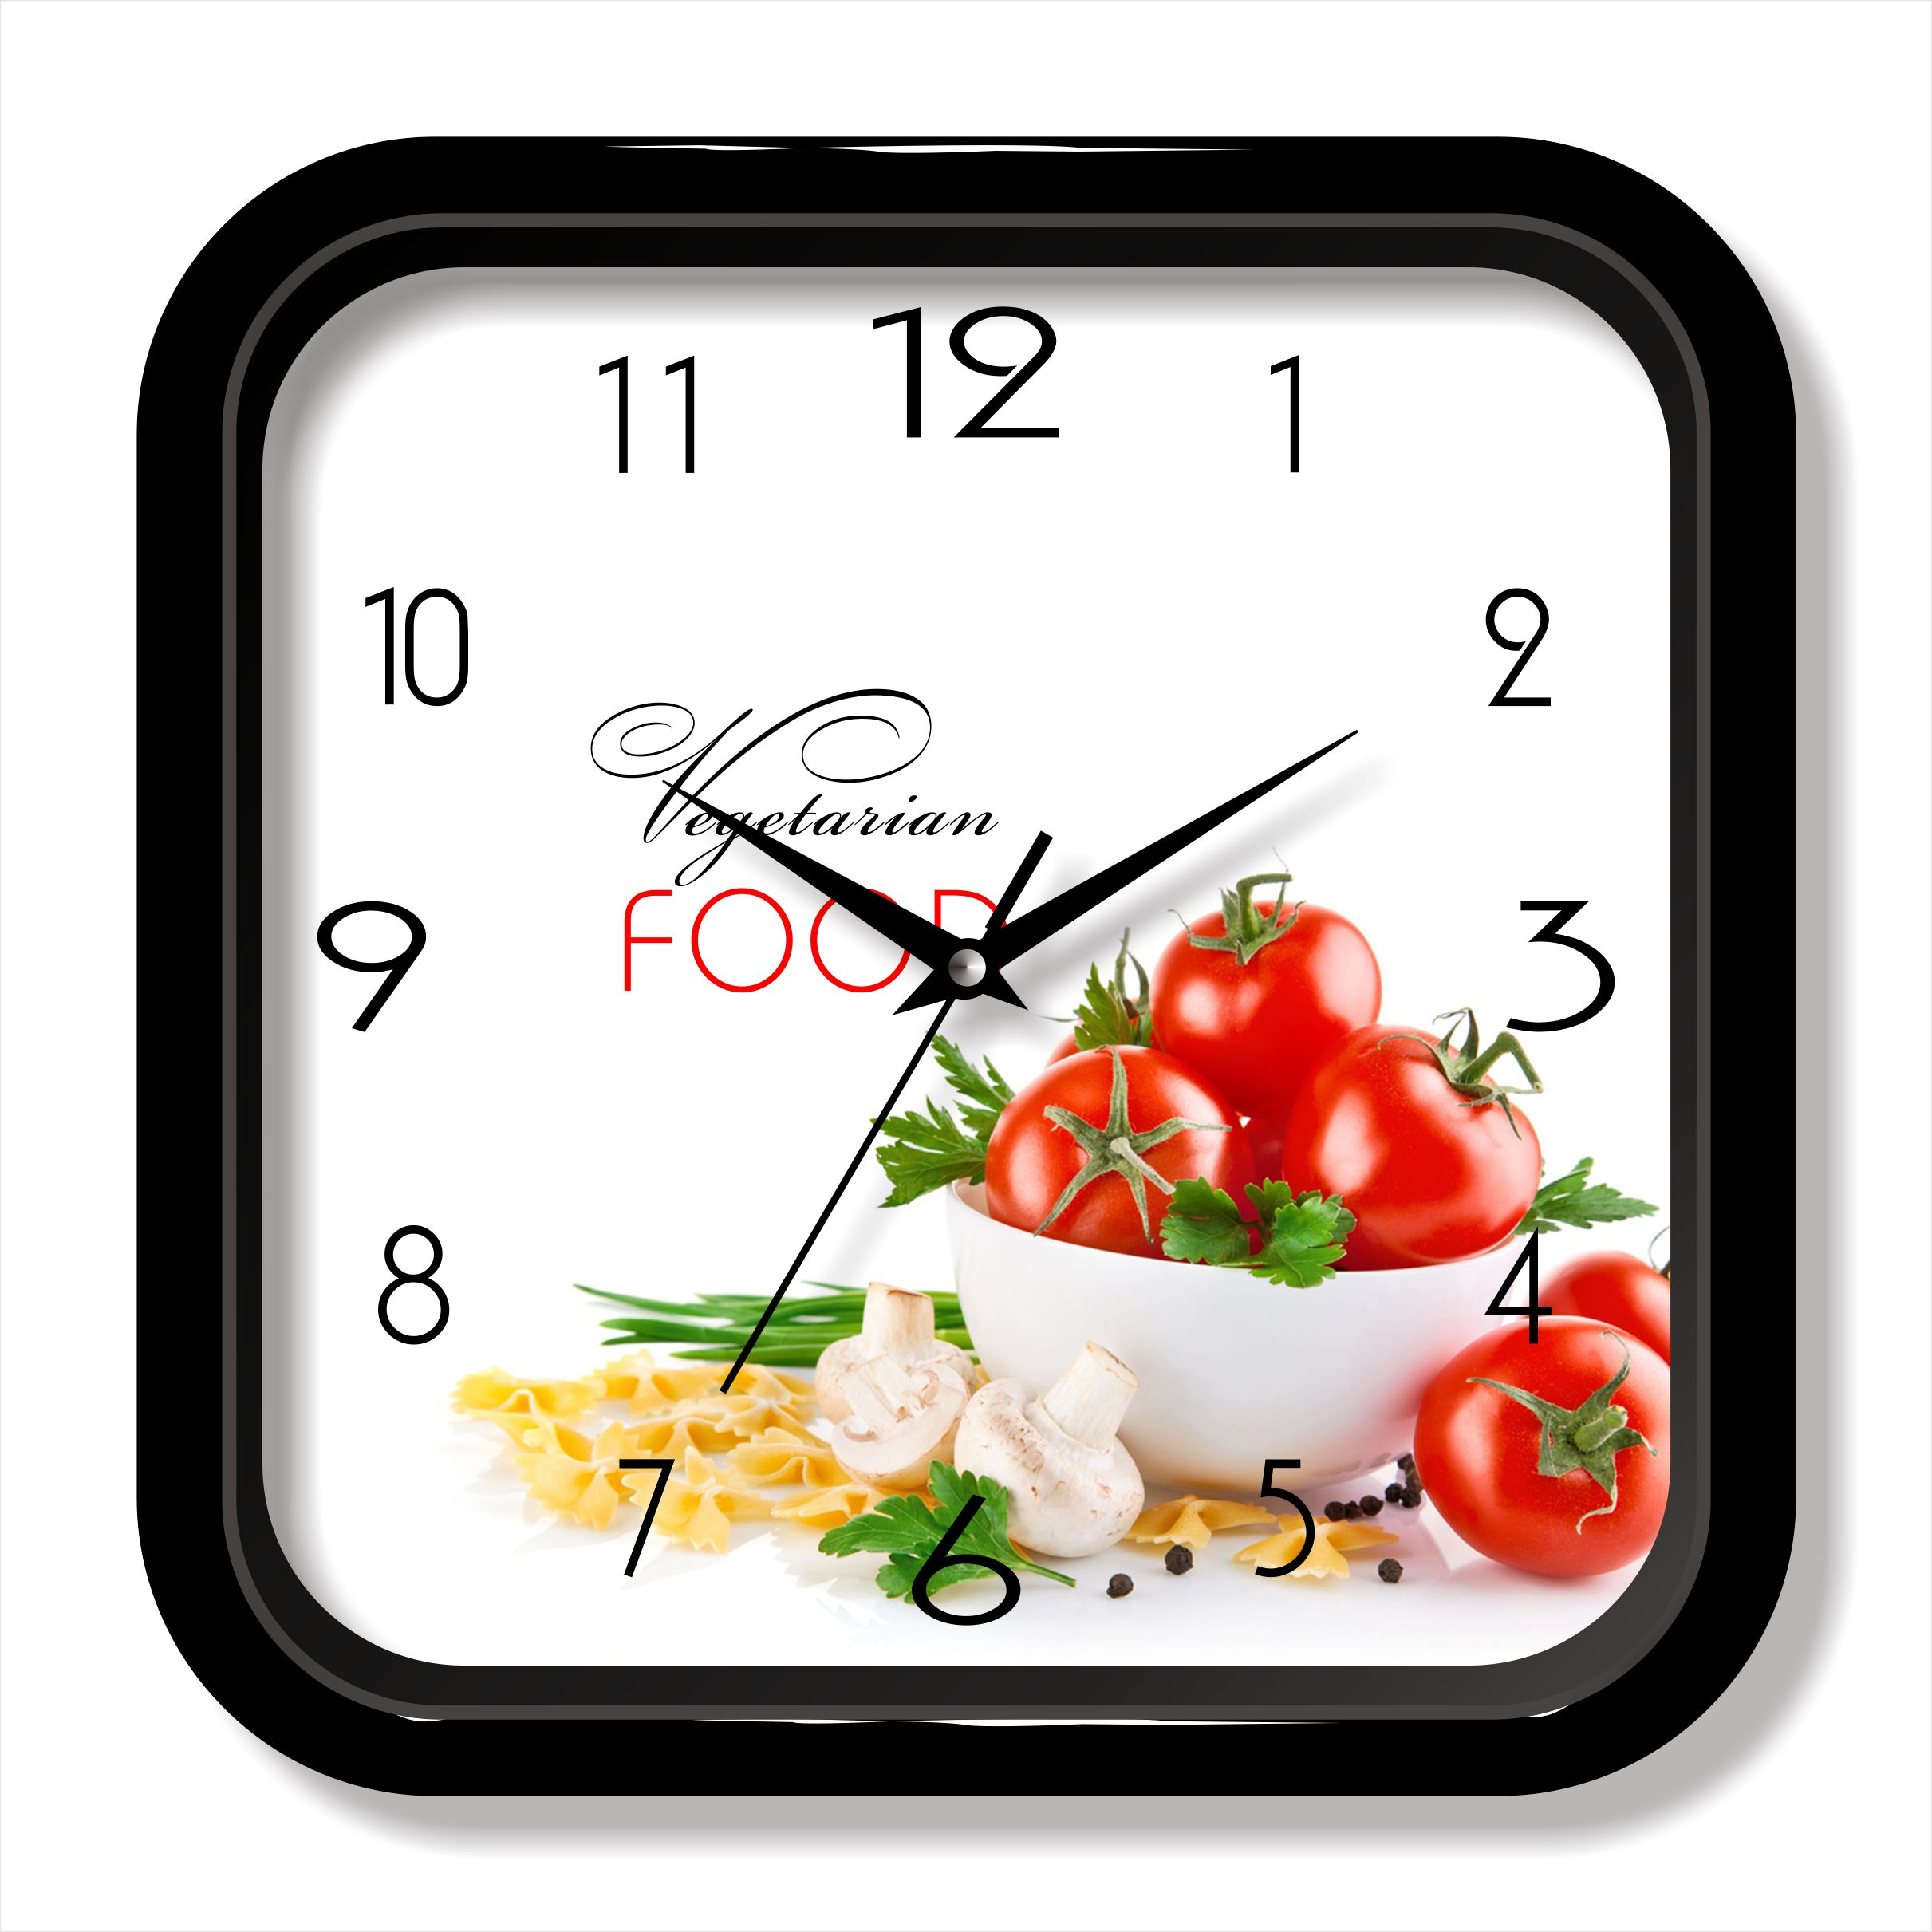 Food photo wall clock